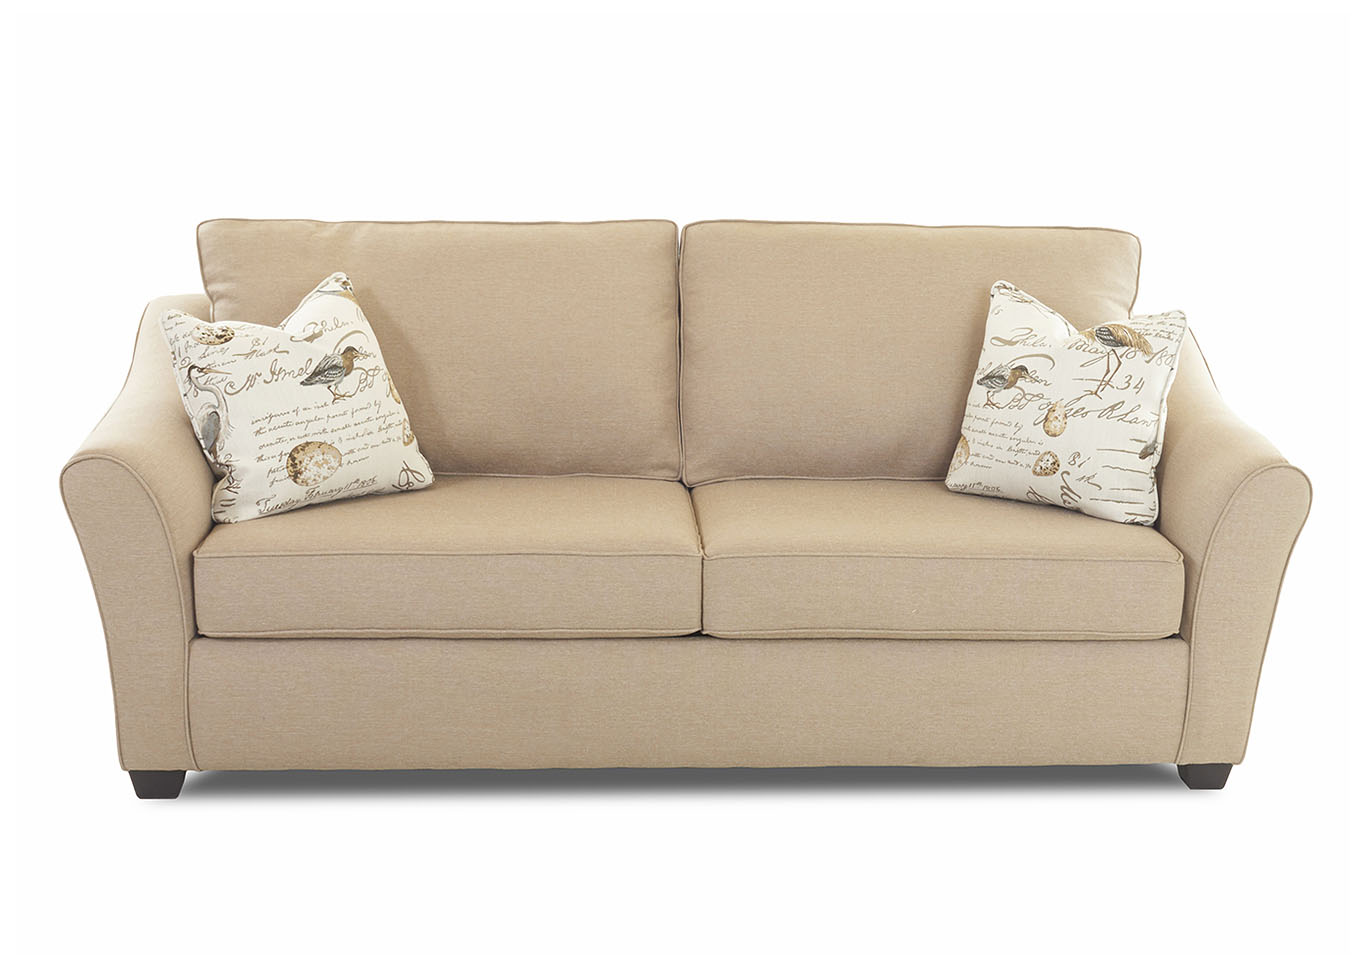 Linville Flax Sleeper Fabric Sofa,Klaussner Home Furnishings